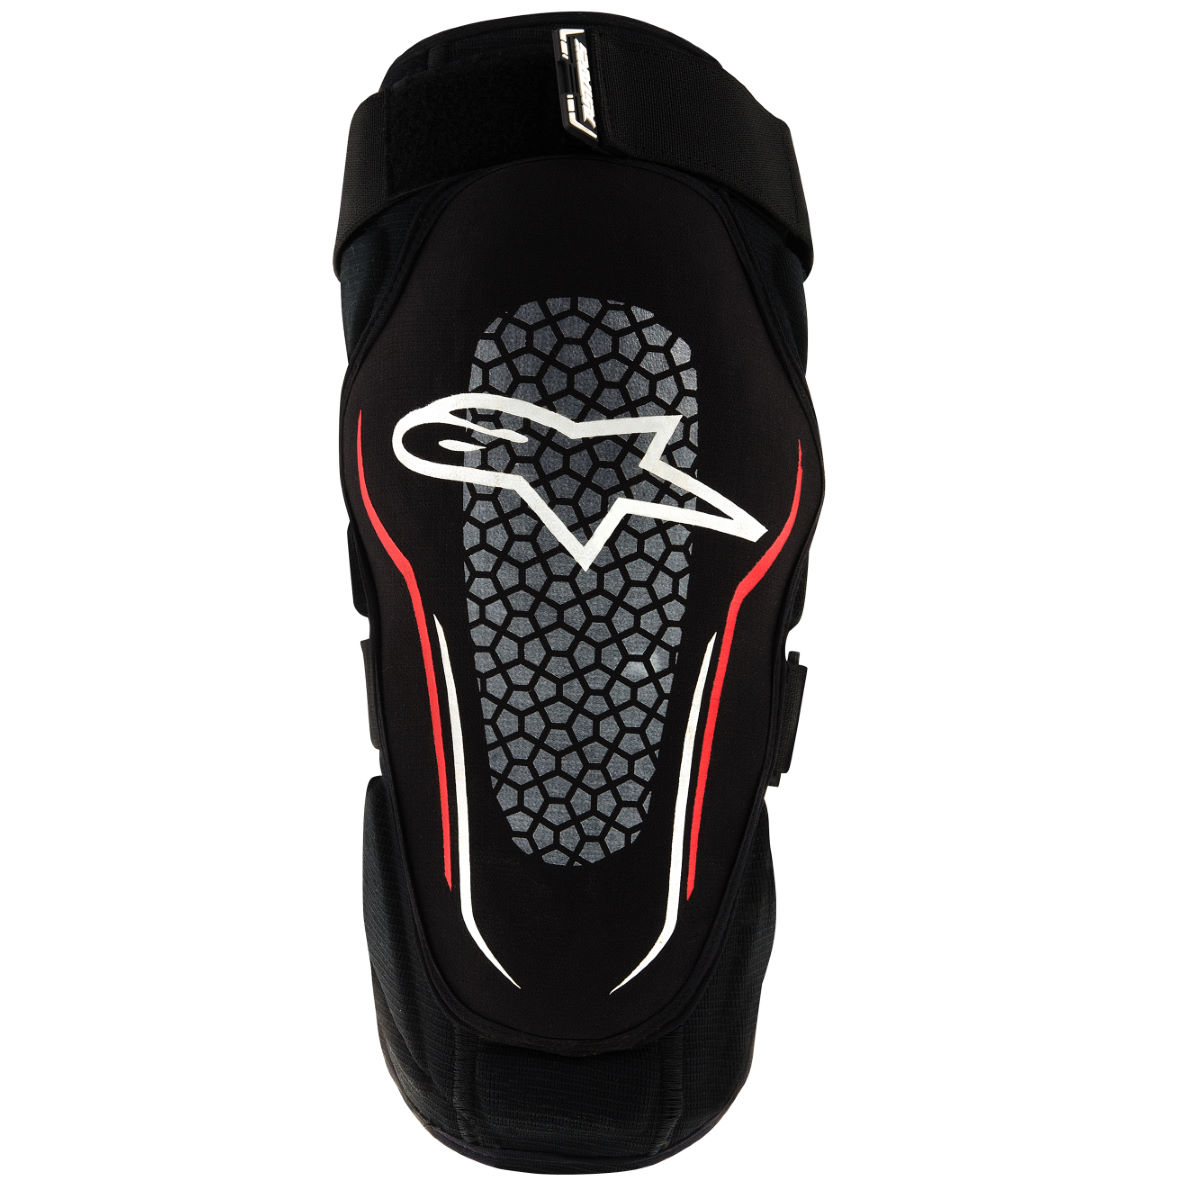 Alpinestars Alps 2 Knee Guard - Rodilleras